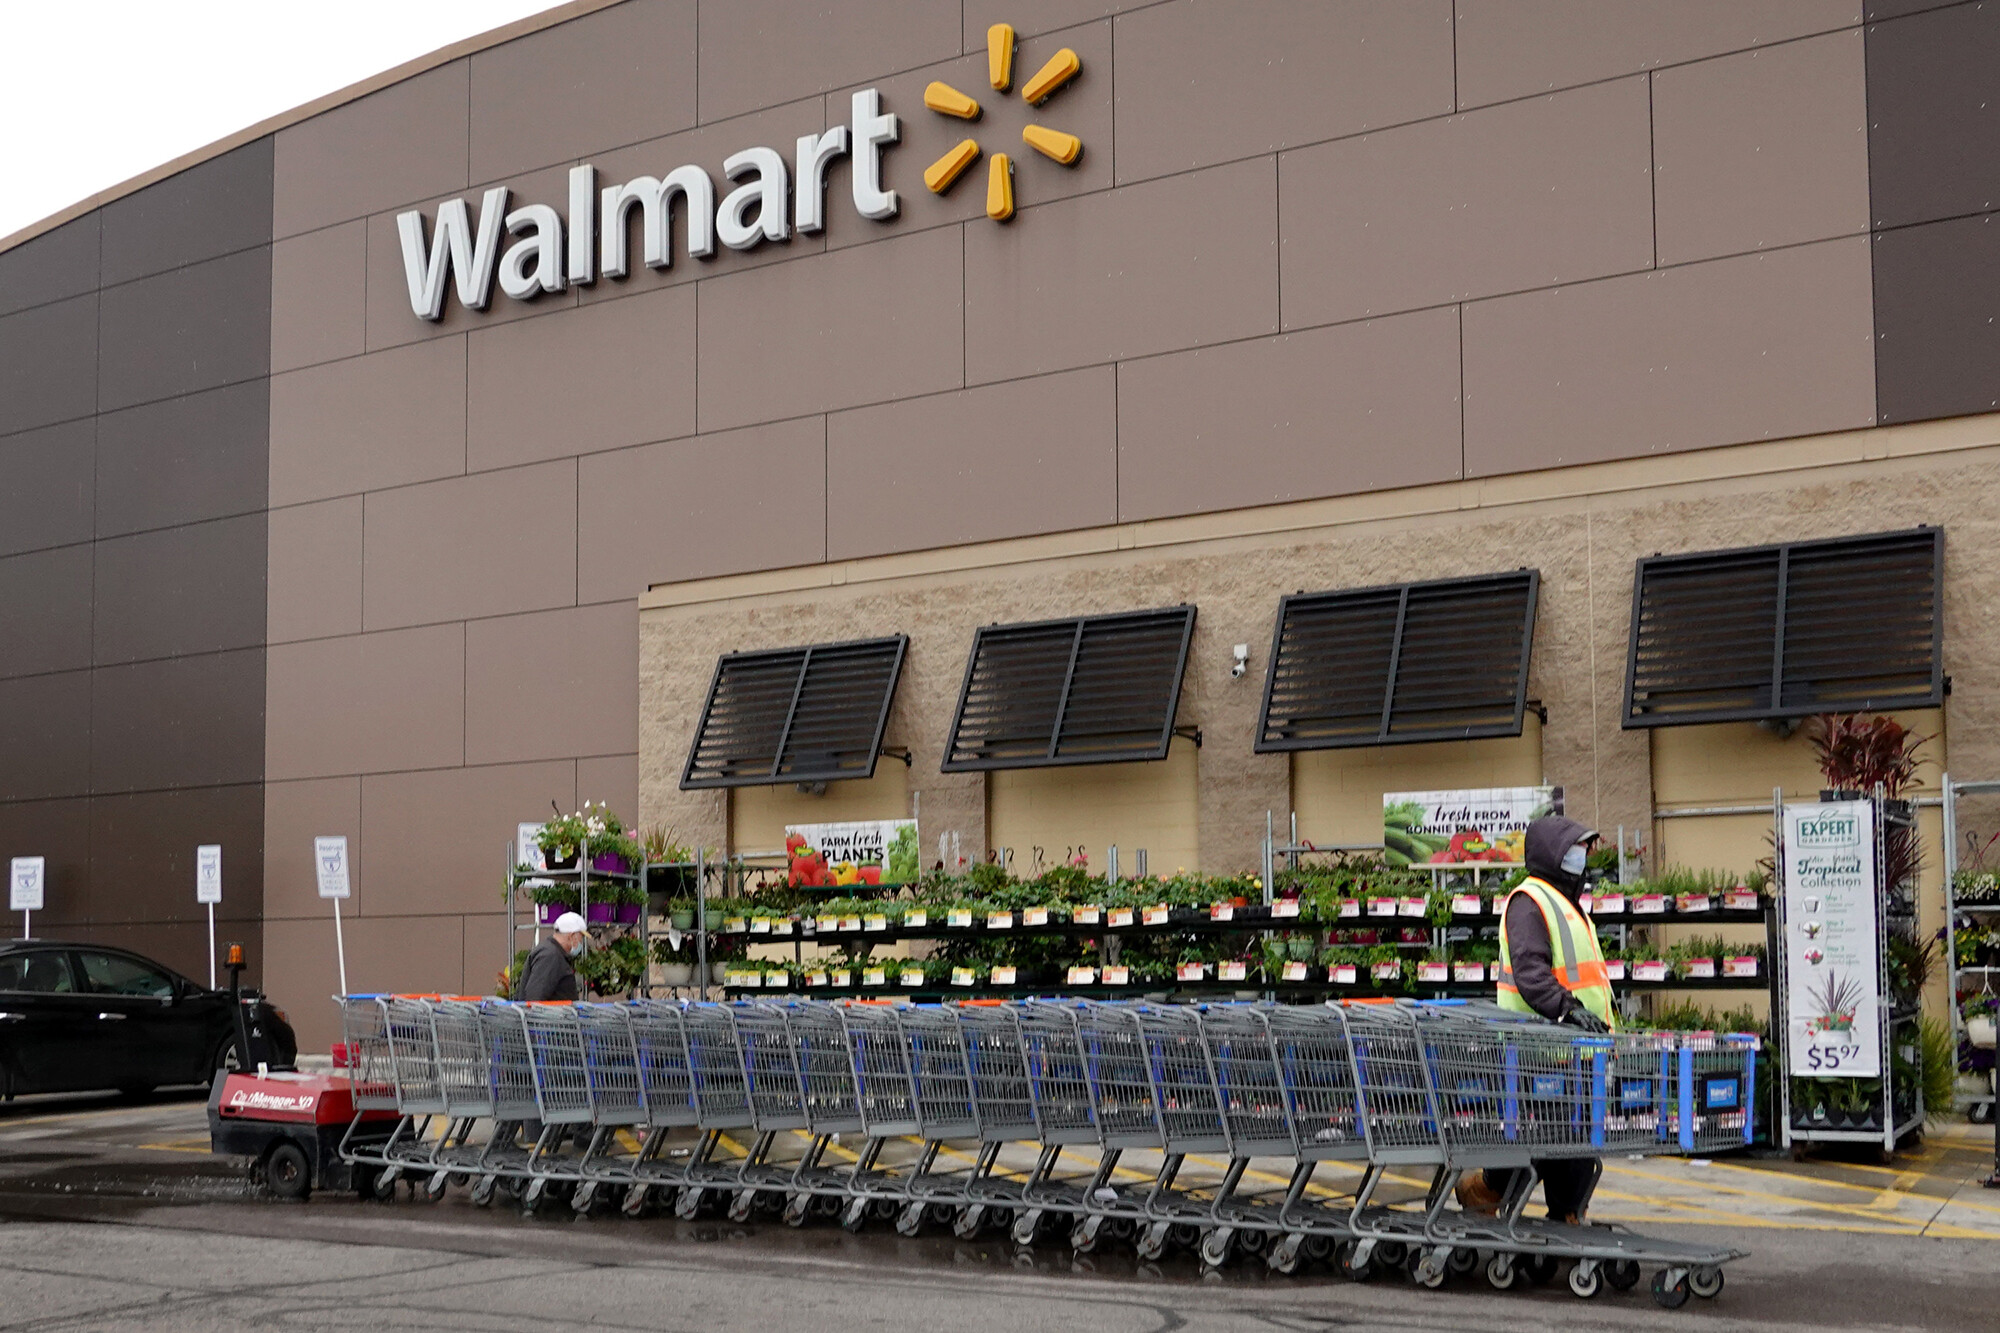 Walmart is ending these bonuses for store workers